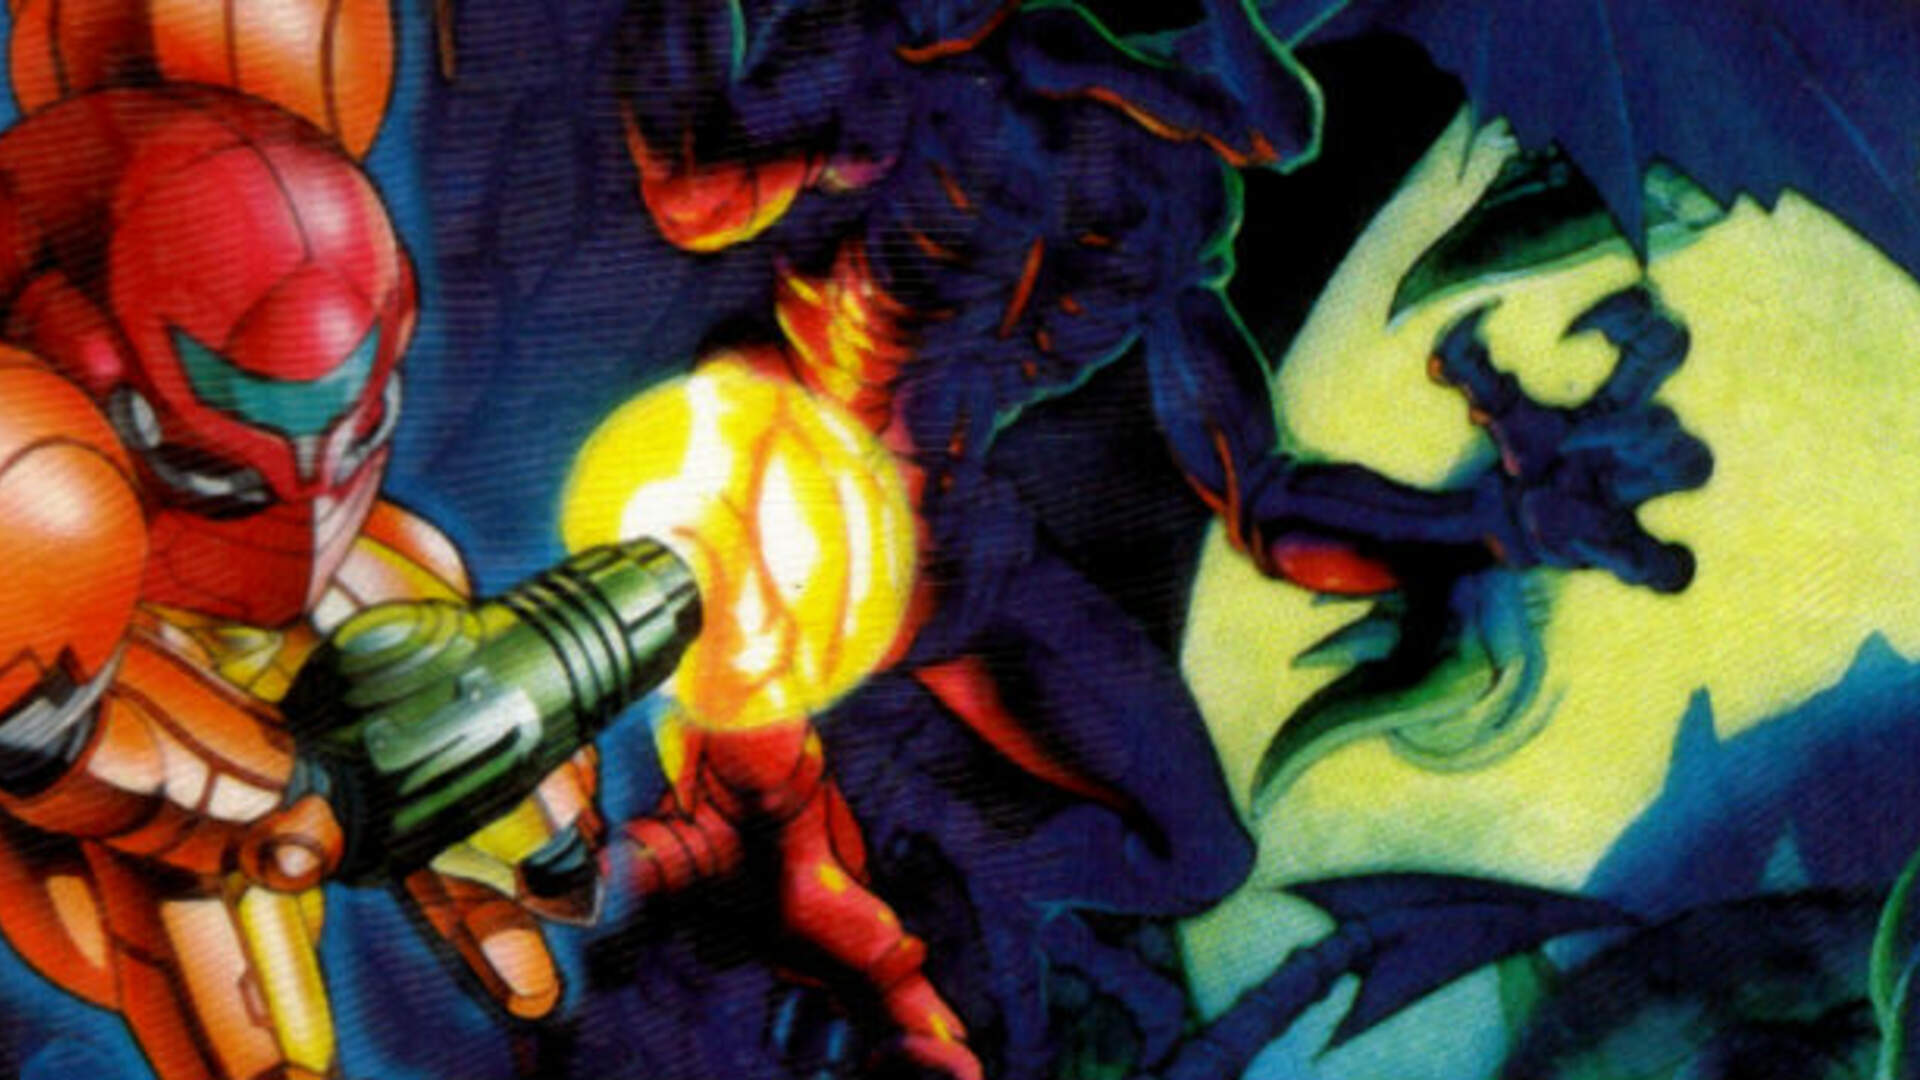 Metroid Game By Game Reviews: Super Metroid